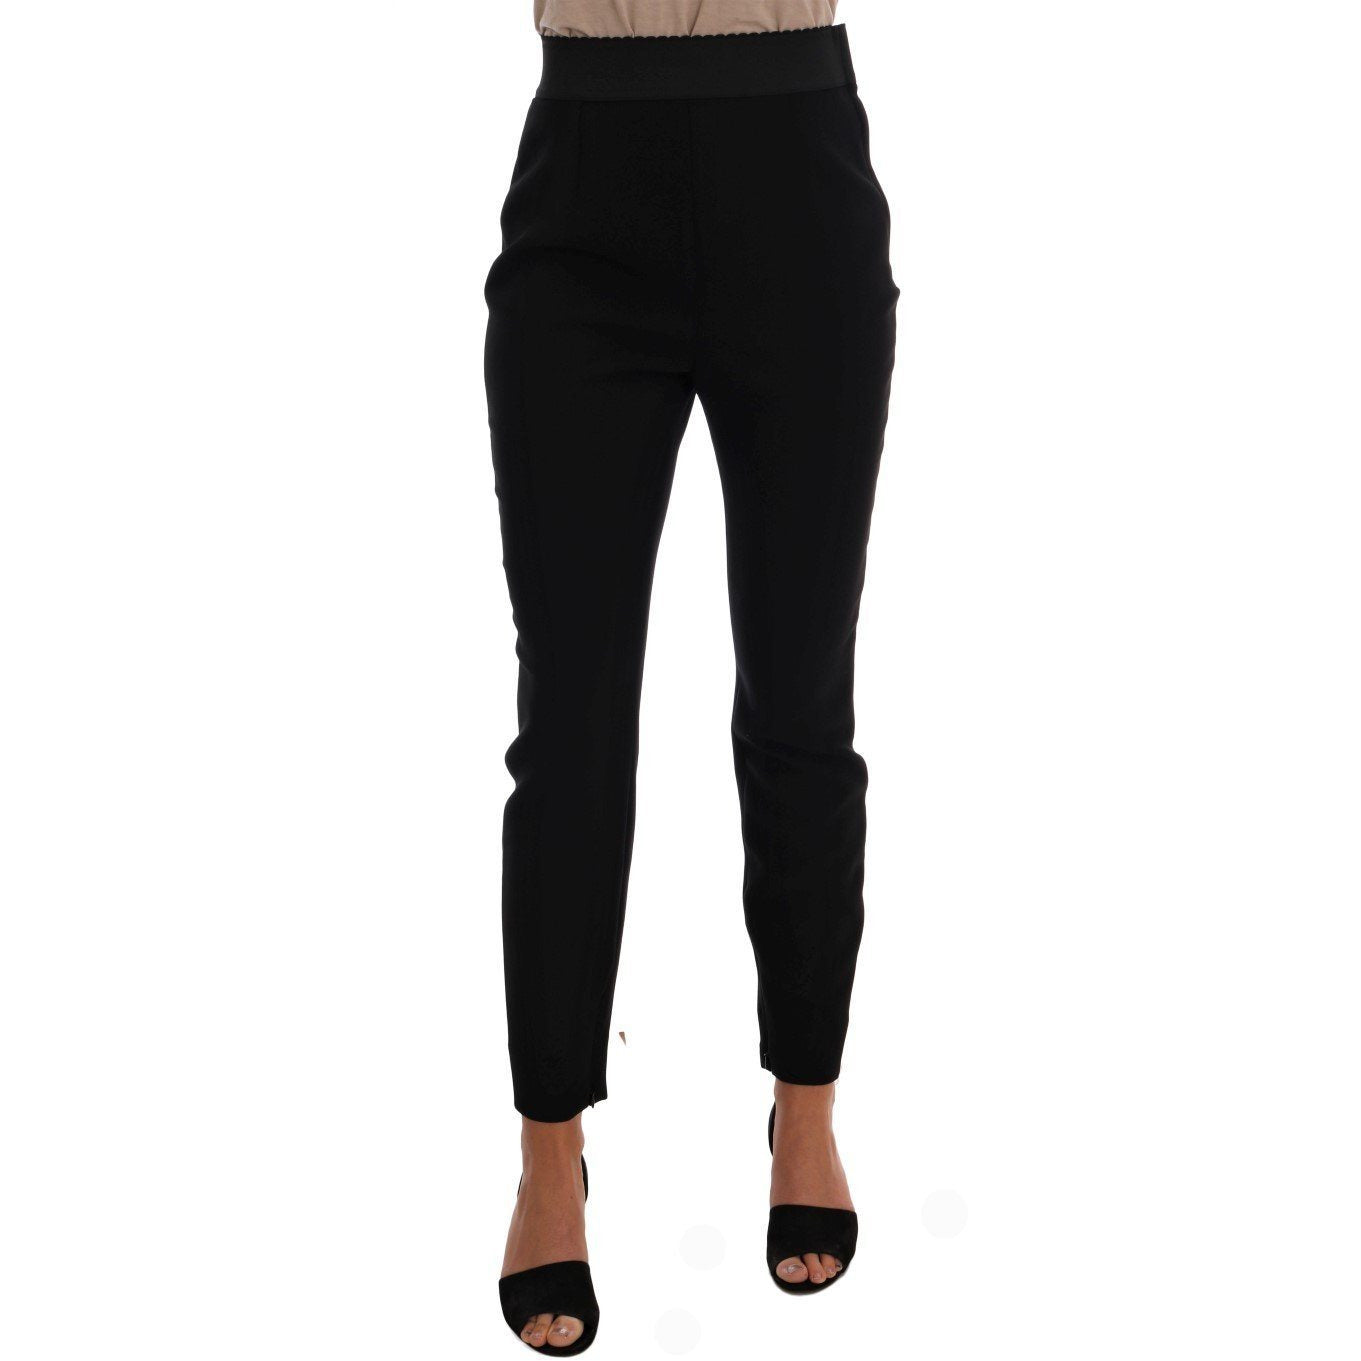 Black Wool Stretch High Waist Pants